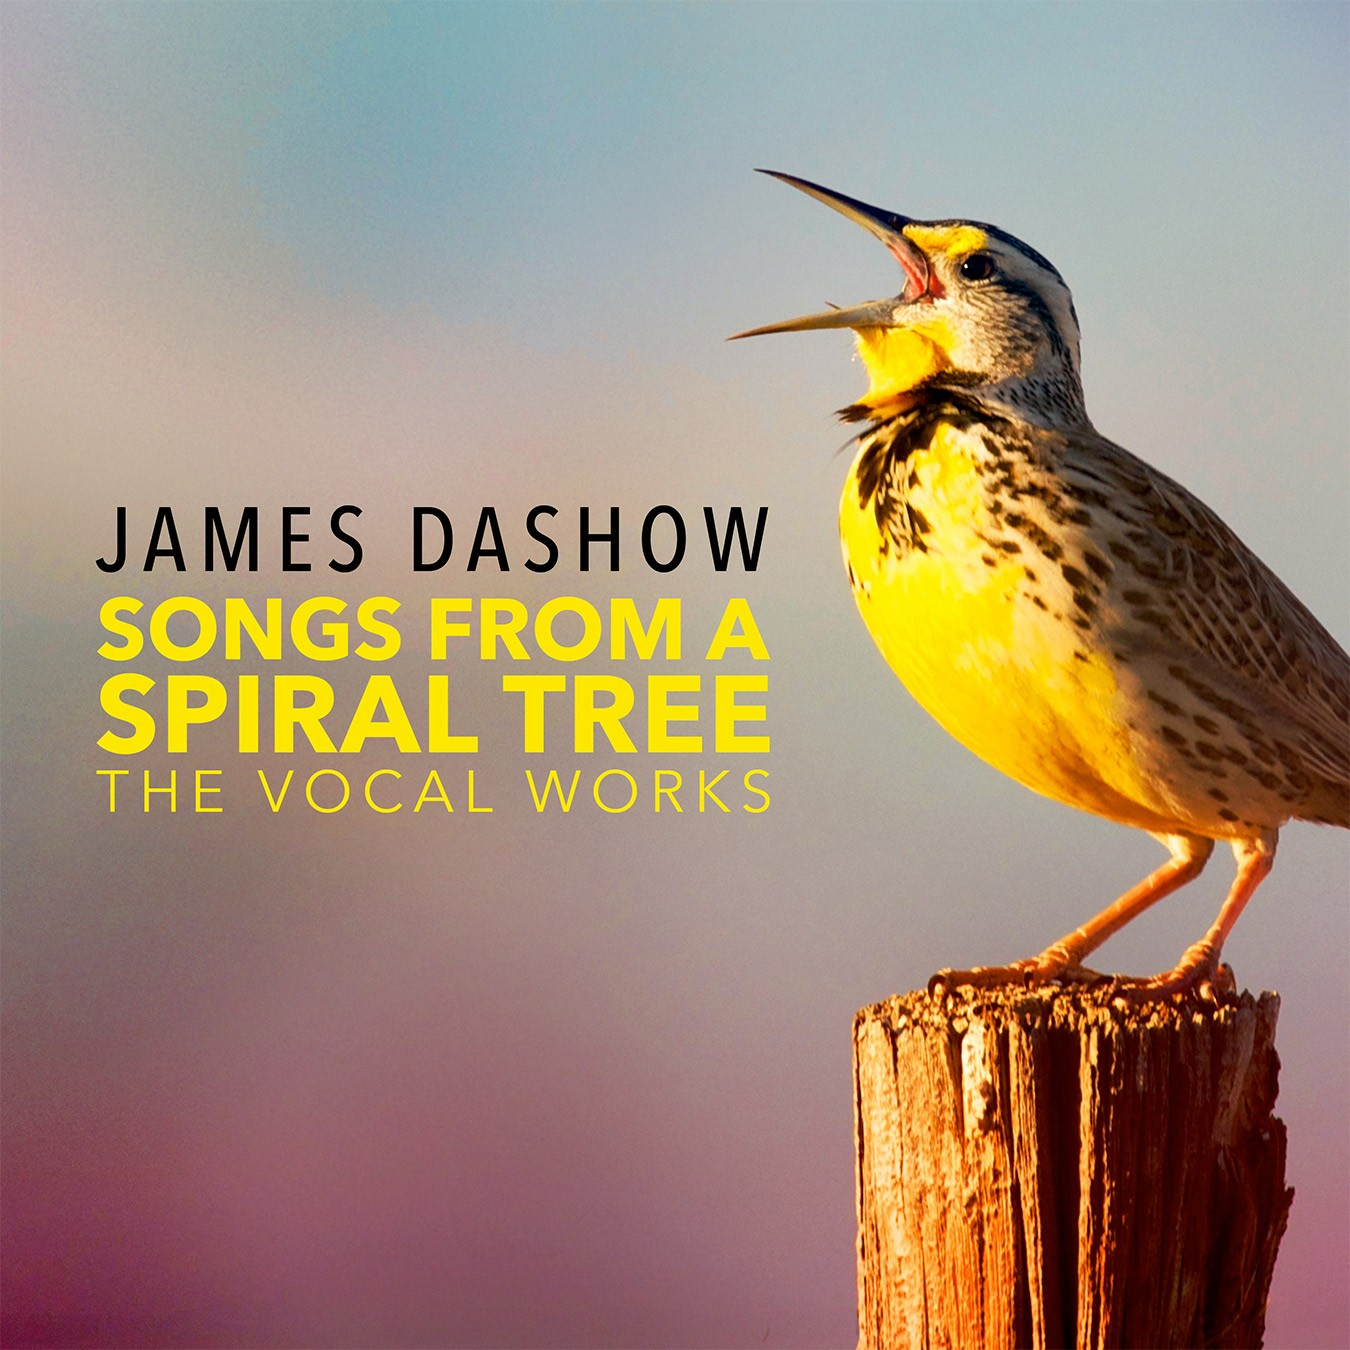 Songs From A Spiral Tree - James Dashow - Album Cover